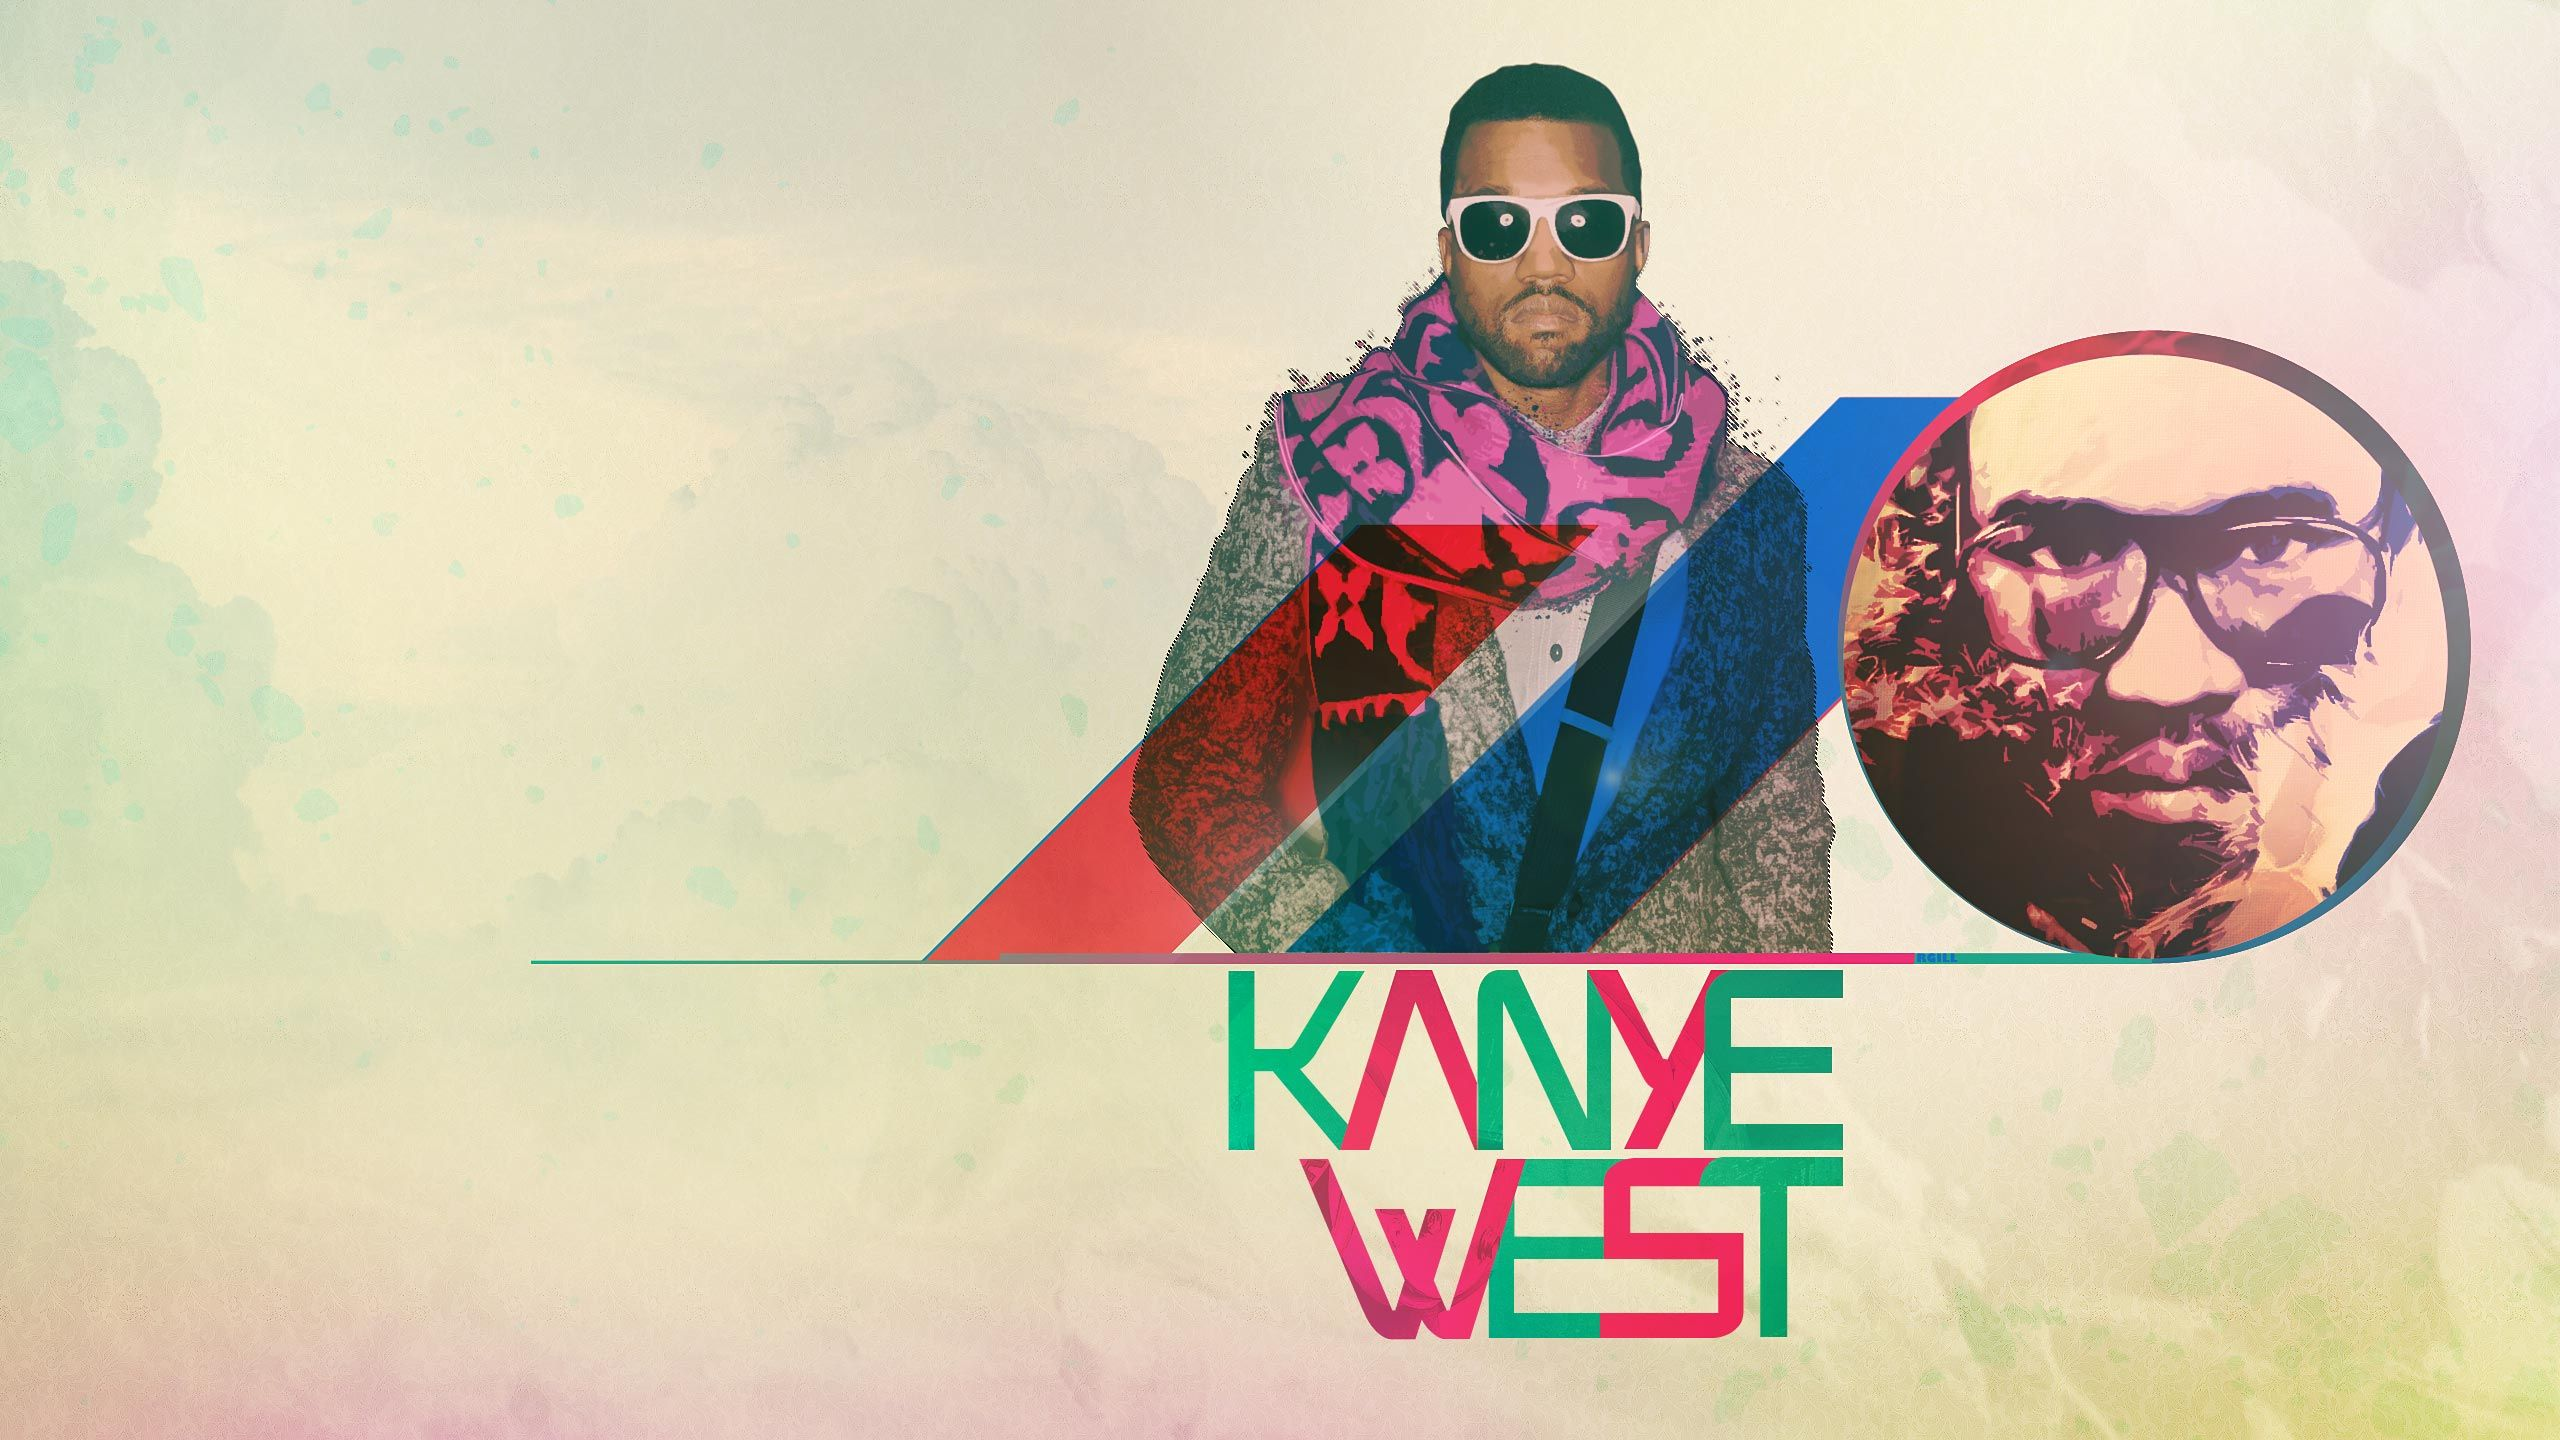 Kanye West Wallpapers Hd